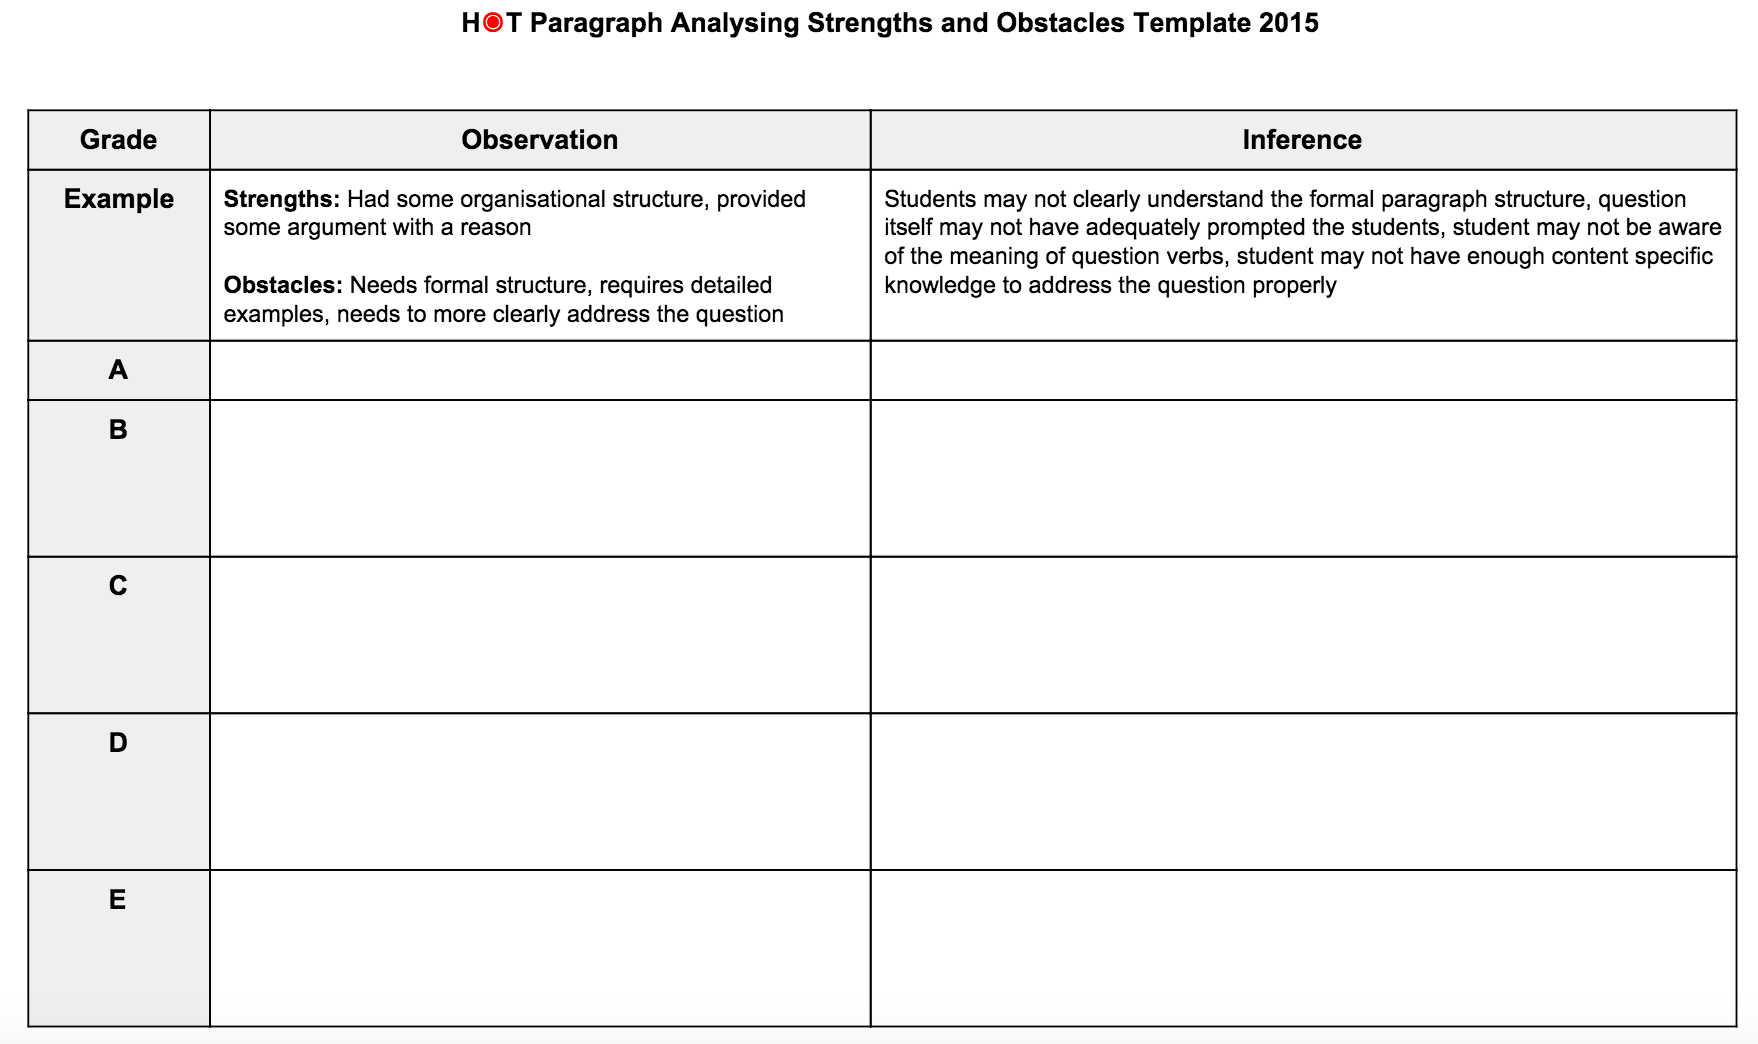 hot paragraphs a data teams based whole school literacy strengths and weaknesses